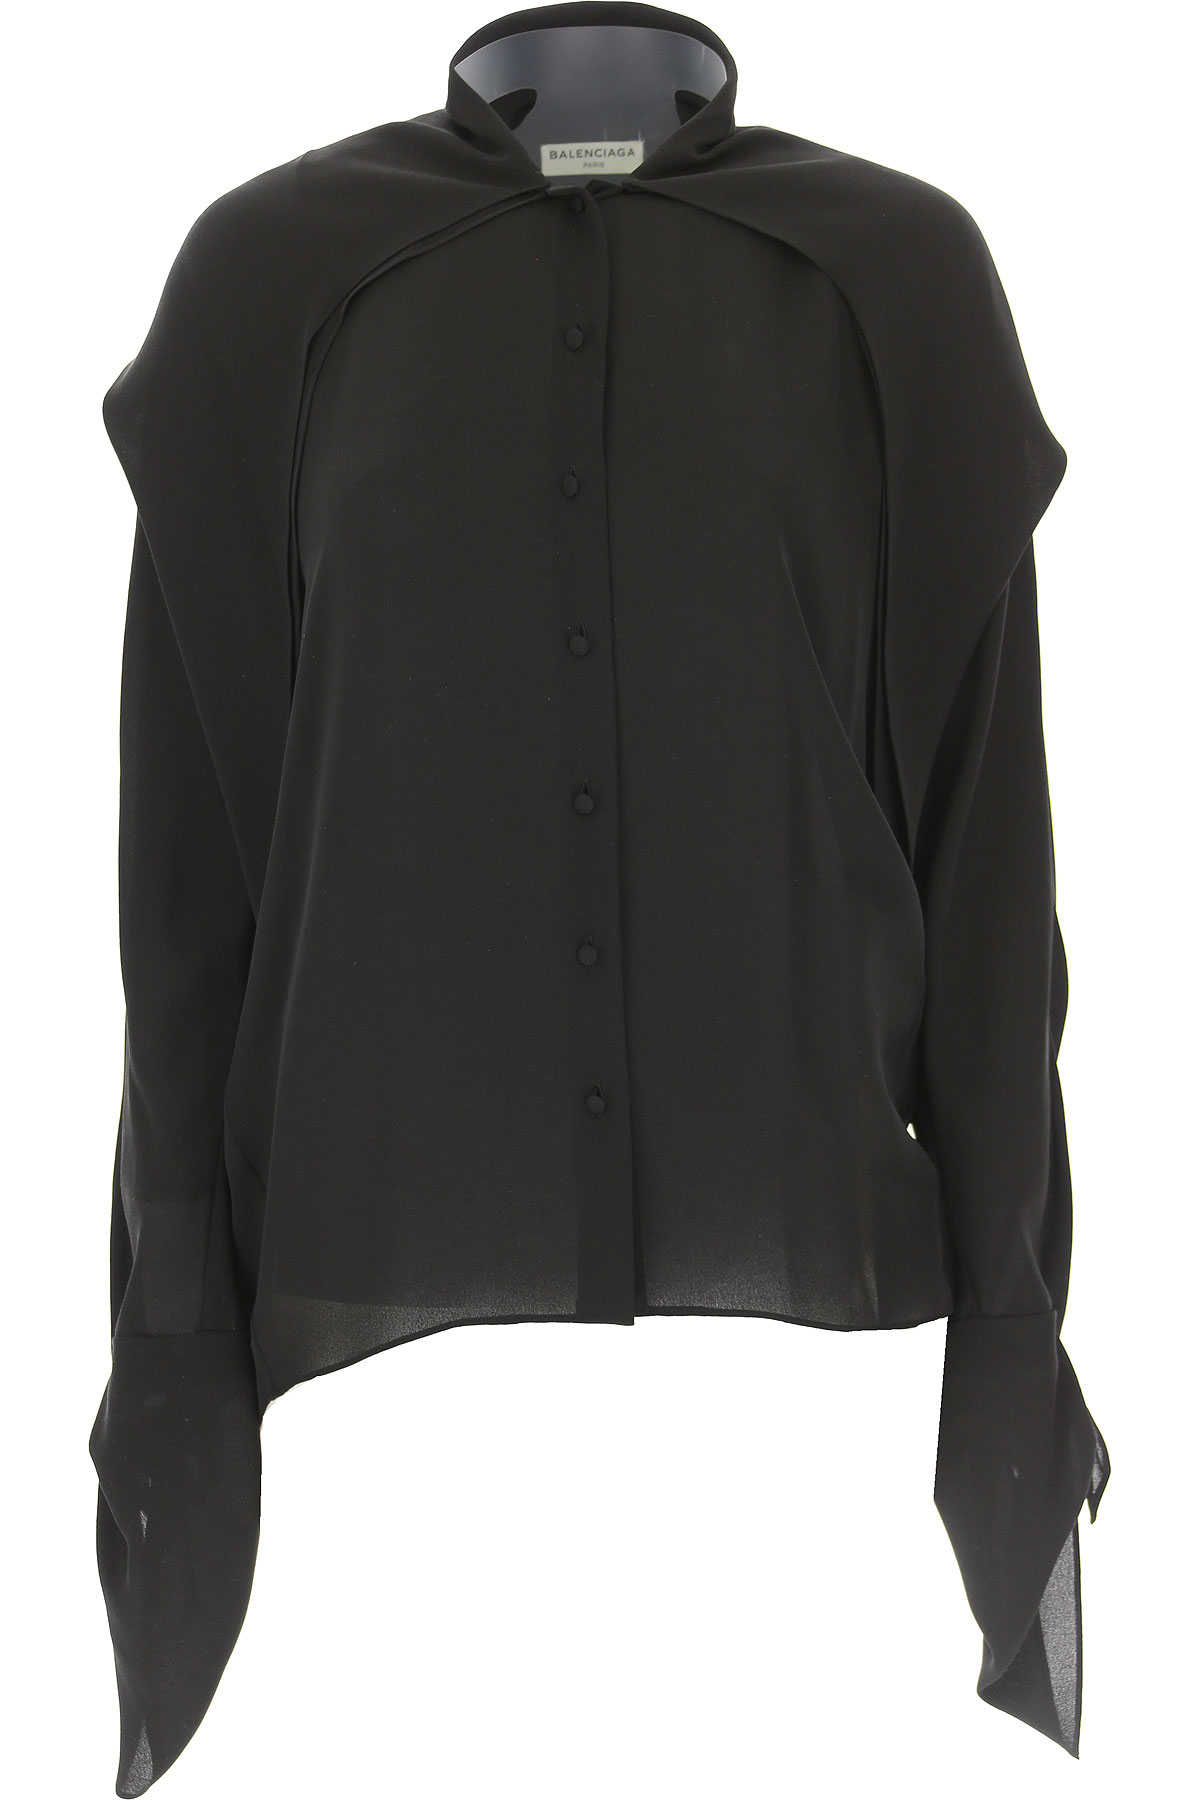 Image of Balenciaga Shirt for Women On Sale in Outlet, Black, Silk, 2017, US 6 - I 42 - GB 10 - F 38 US 8 - I 44 - GB 12 - F 40